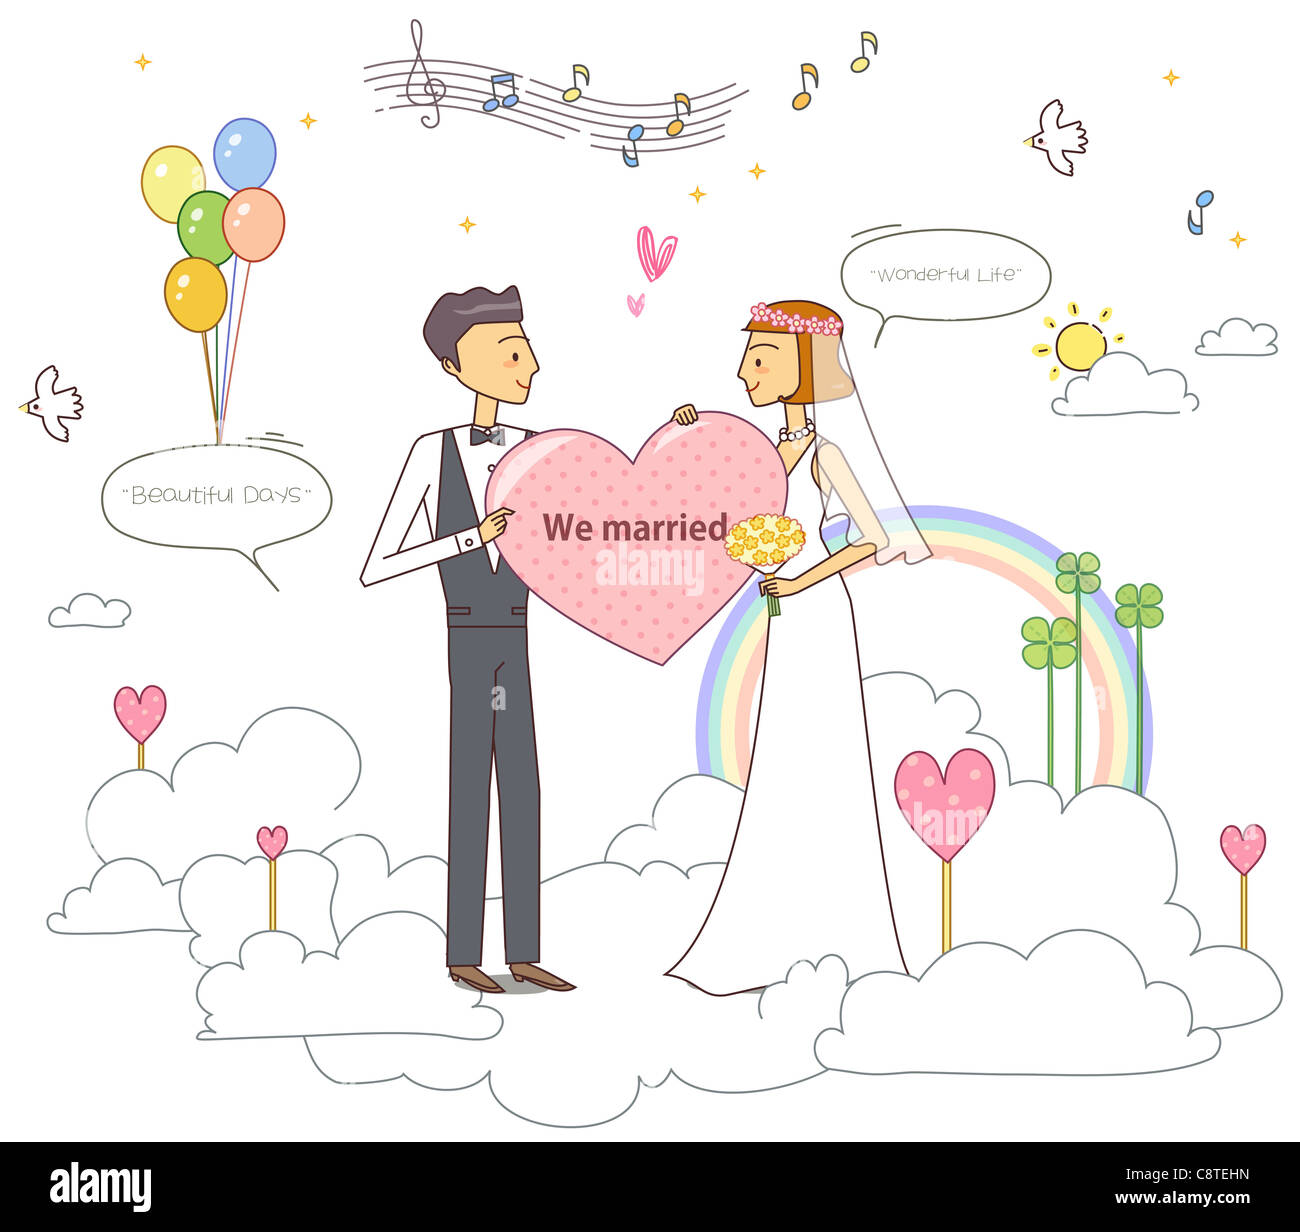 Illustration of newly wed couple with rainbow in background - Stock Image